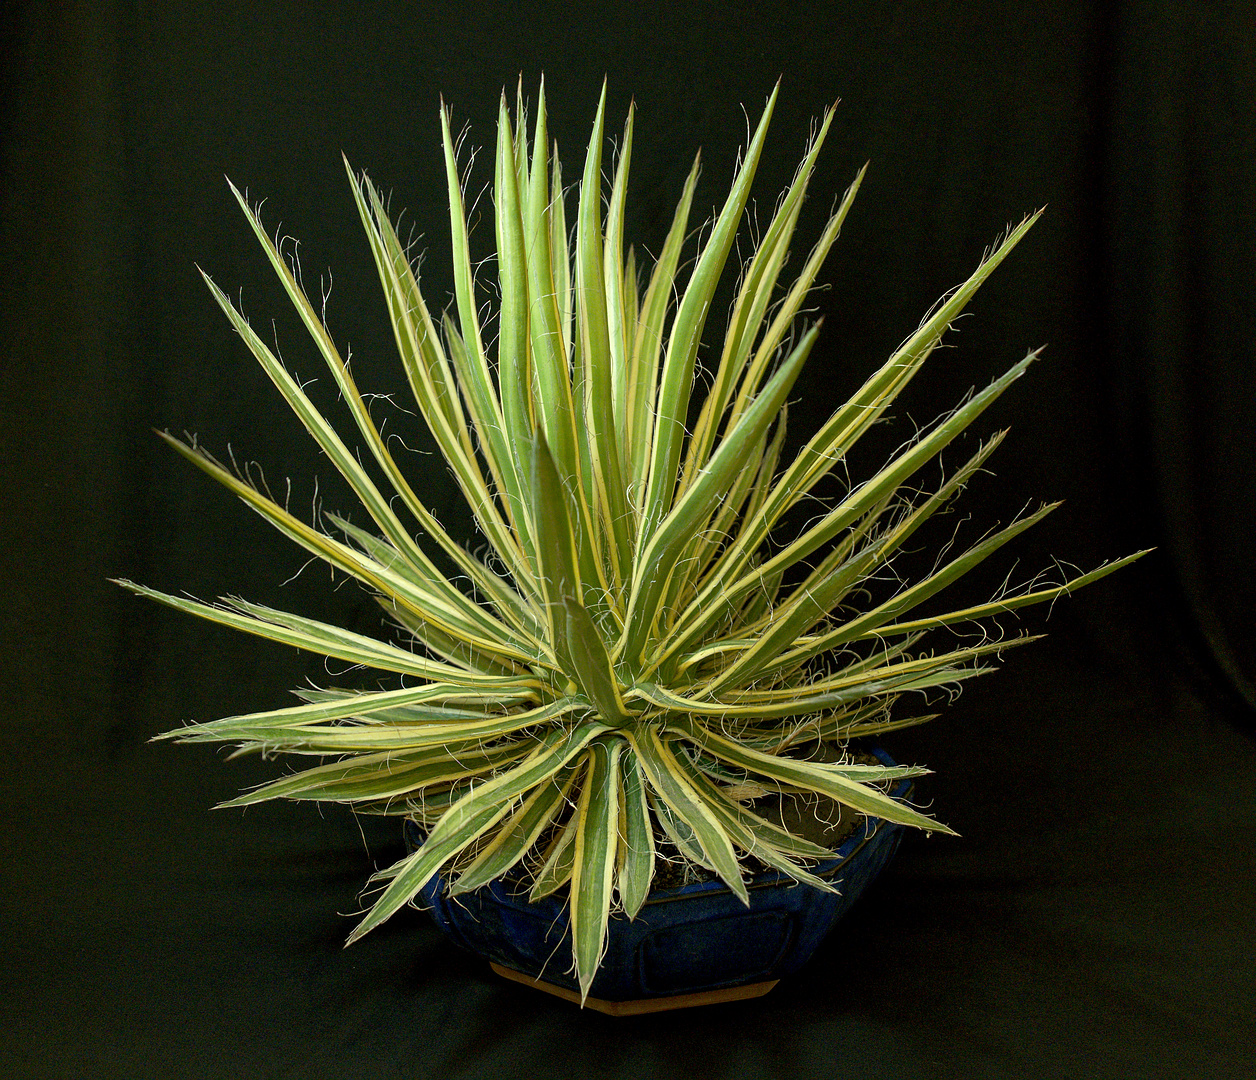 SCCSS 2017 November - Winner Novice Succulent - Bernard Johnson - Agave filifera 'Shiro no Ohi'